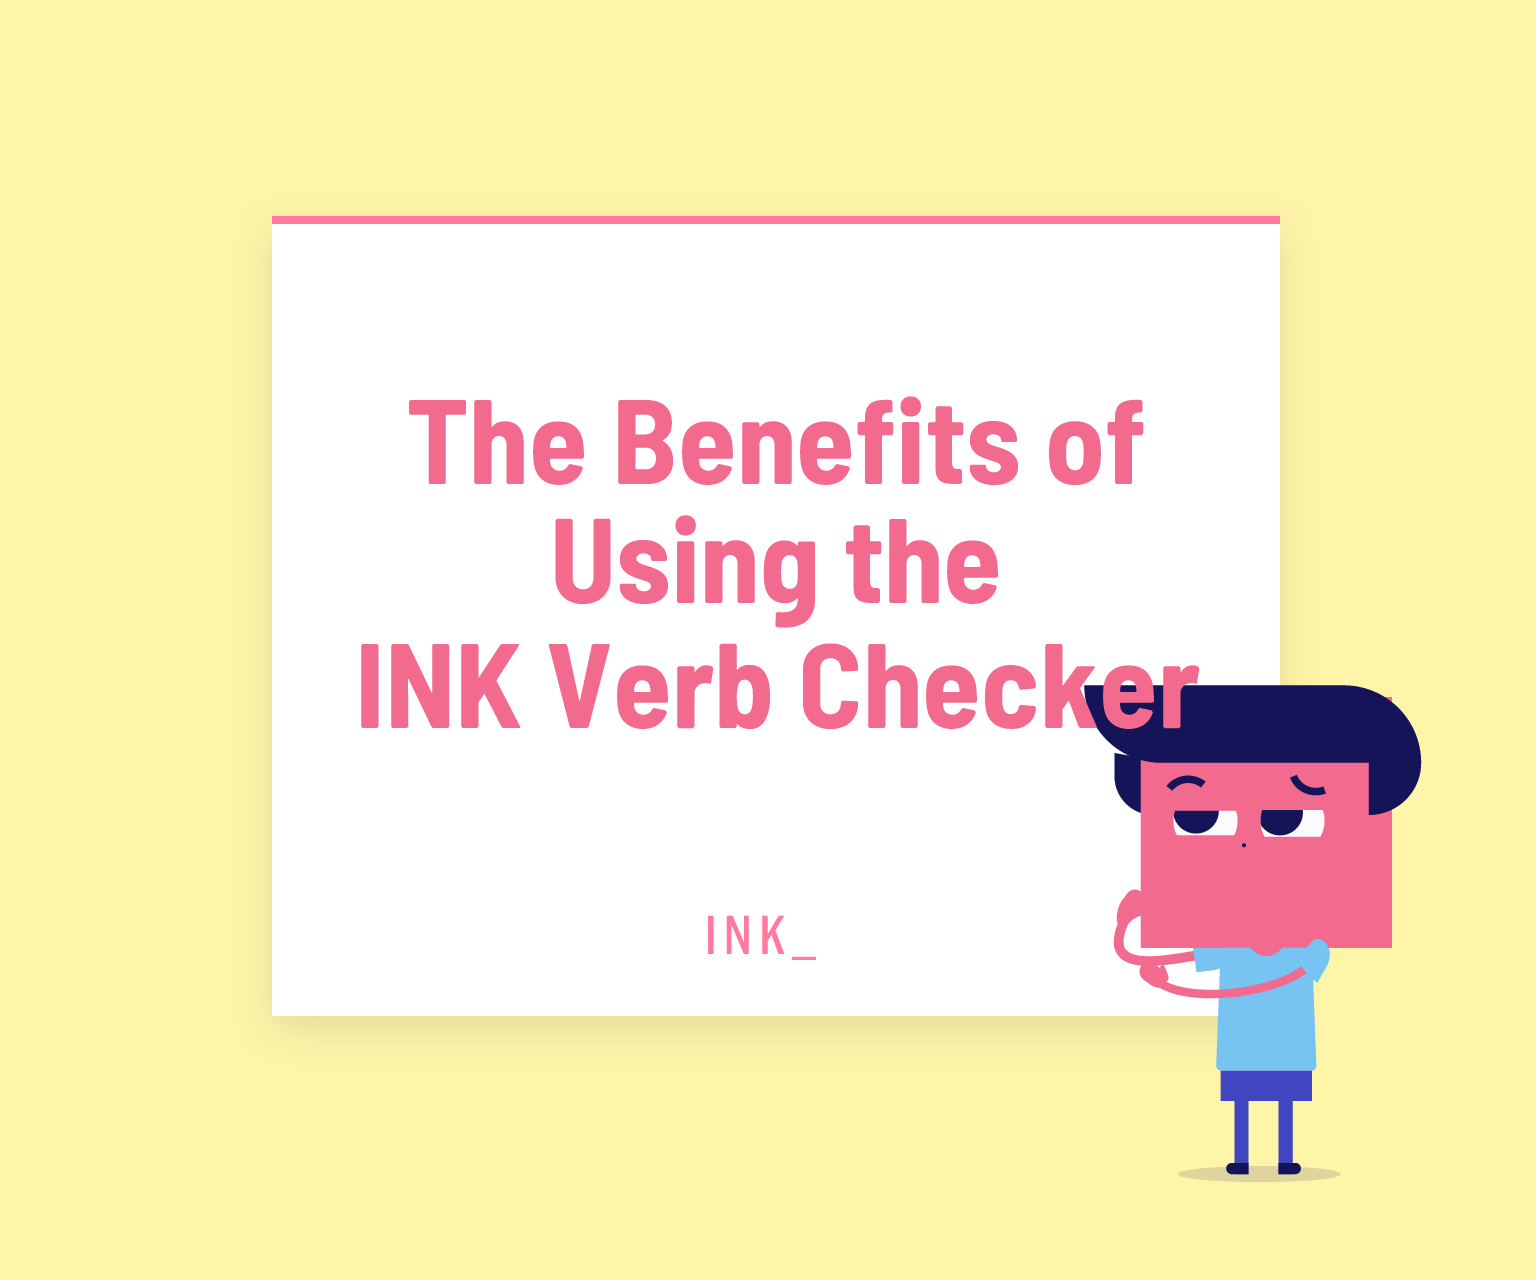 Benefits of using the ink verb checker